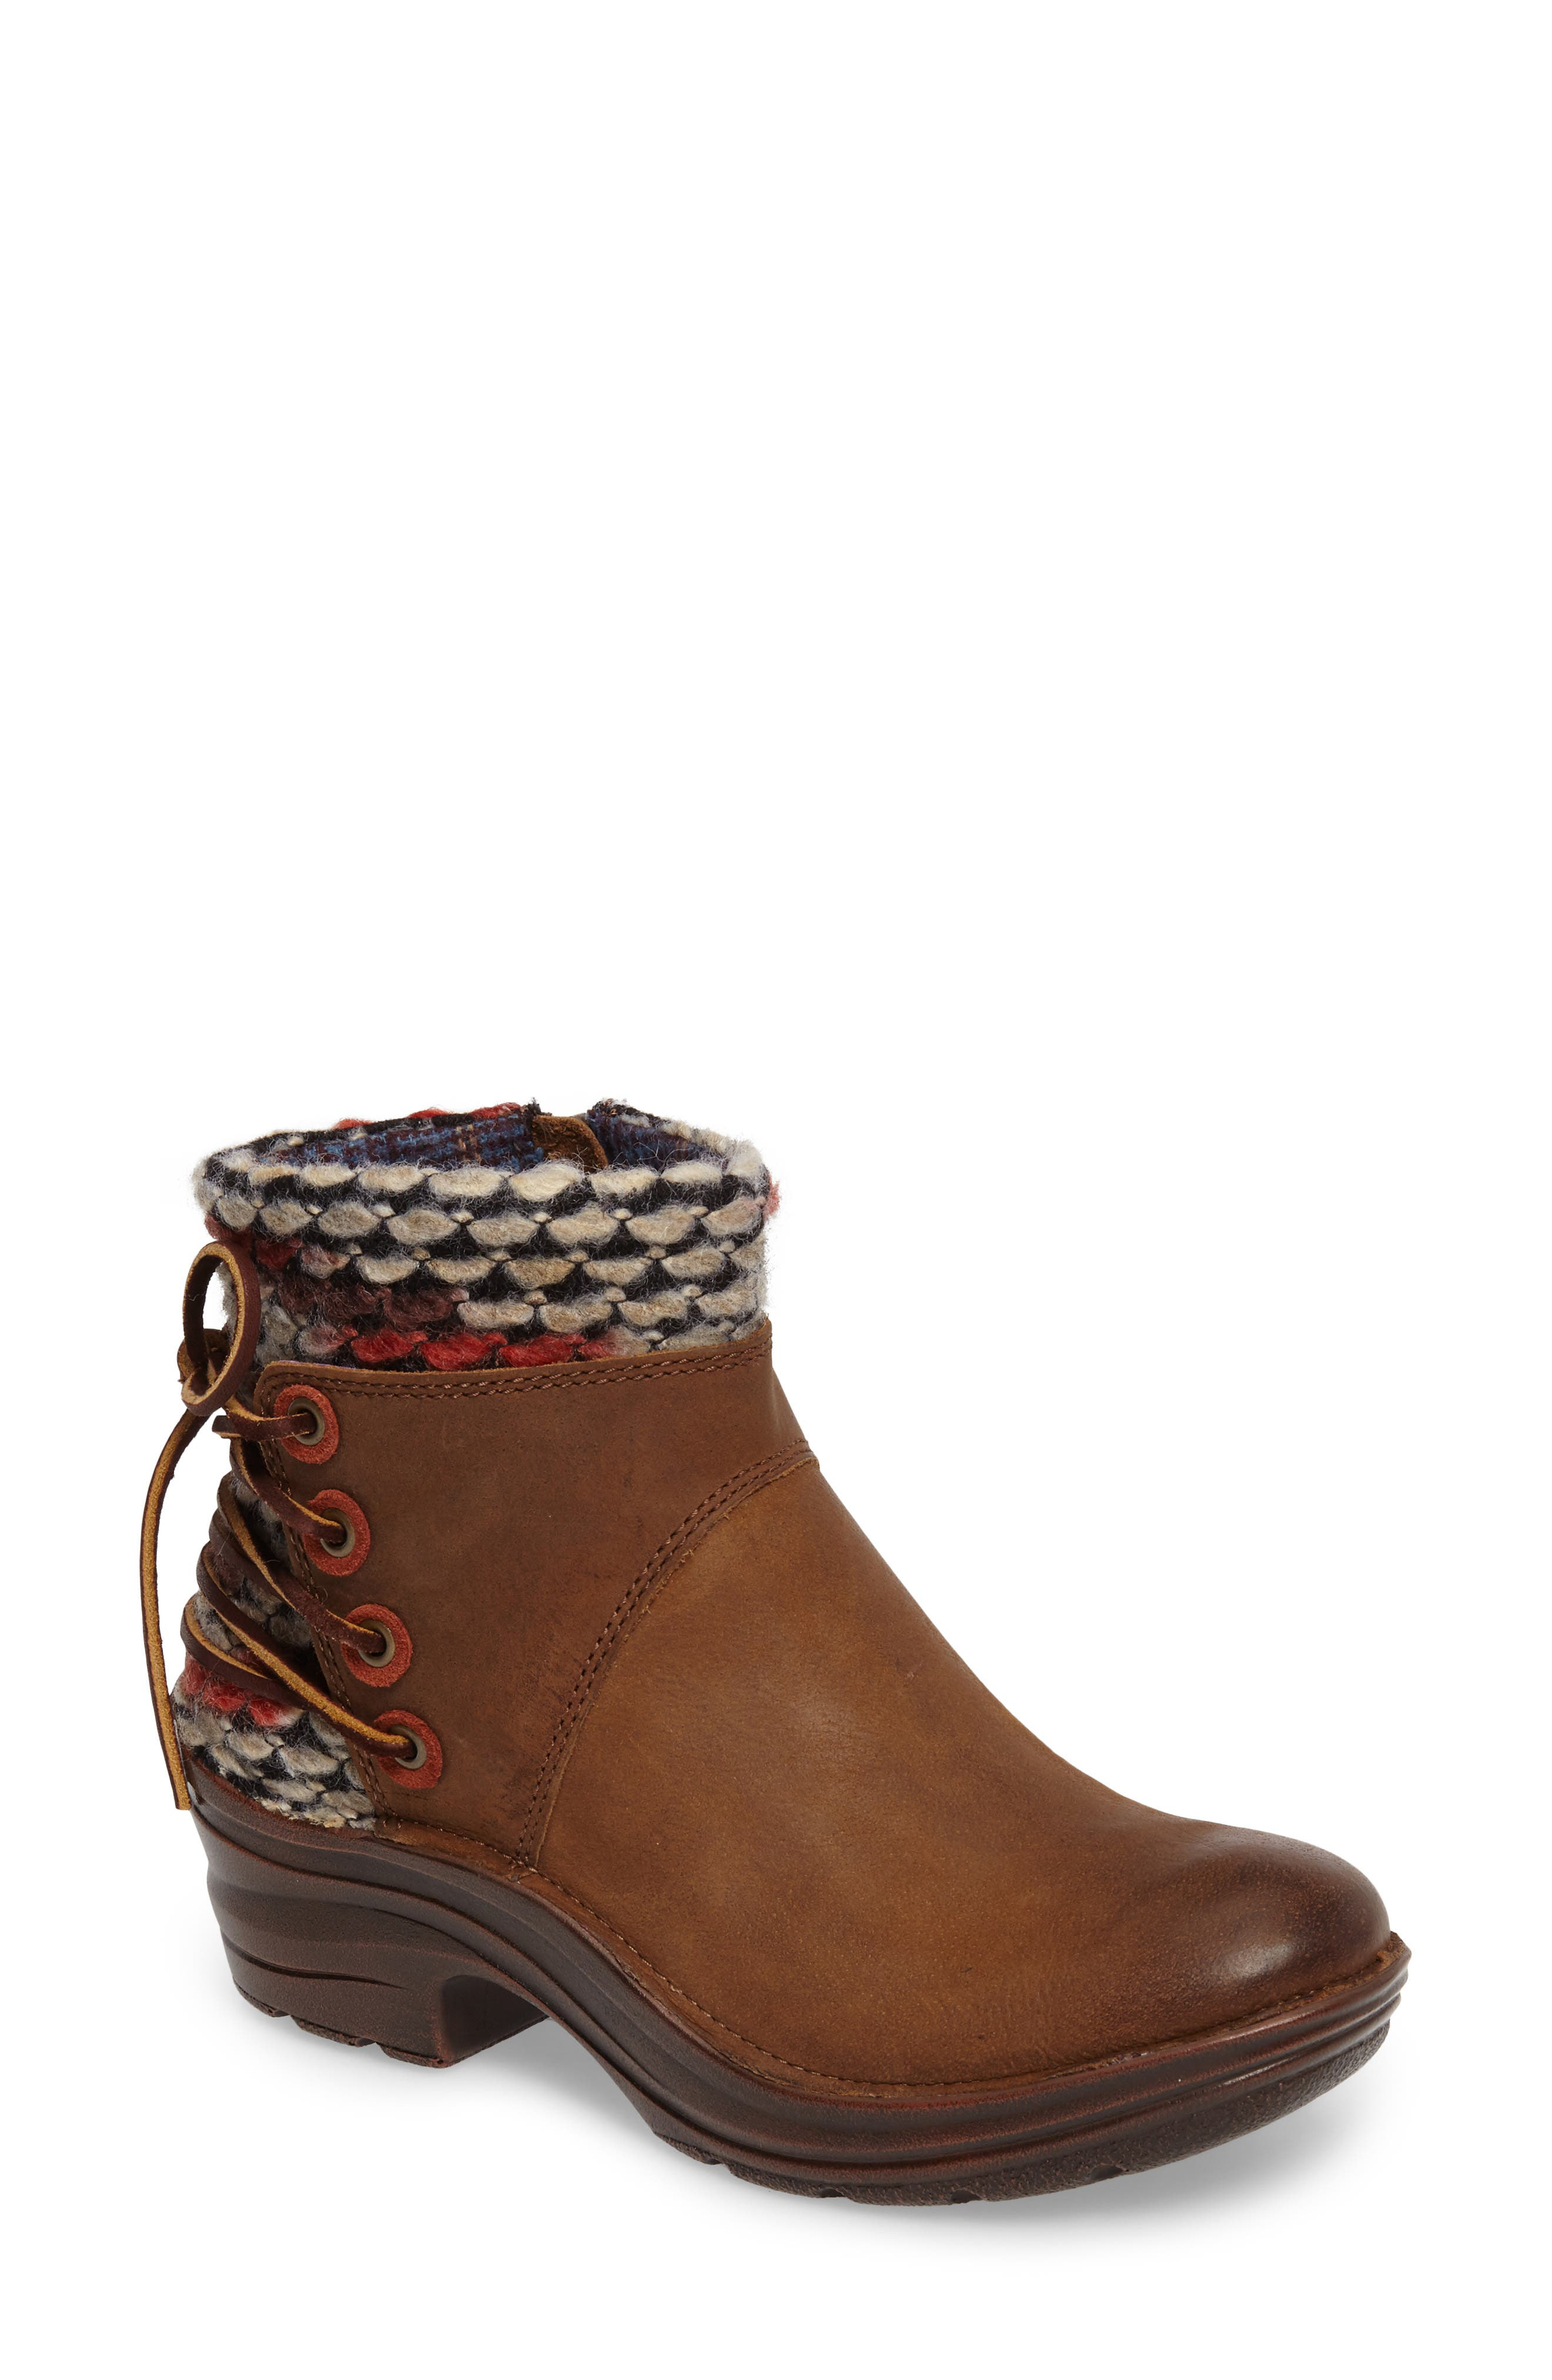 Reign Bootie,                         Main,                         color, Dark Brown Leather